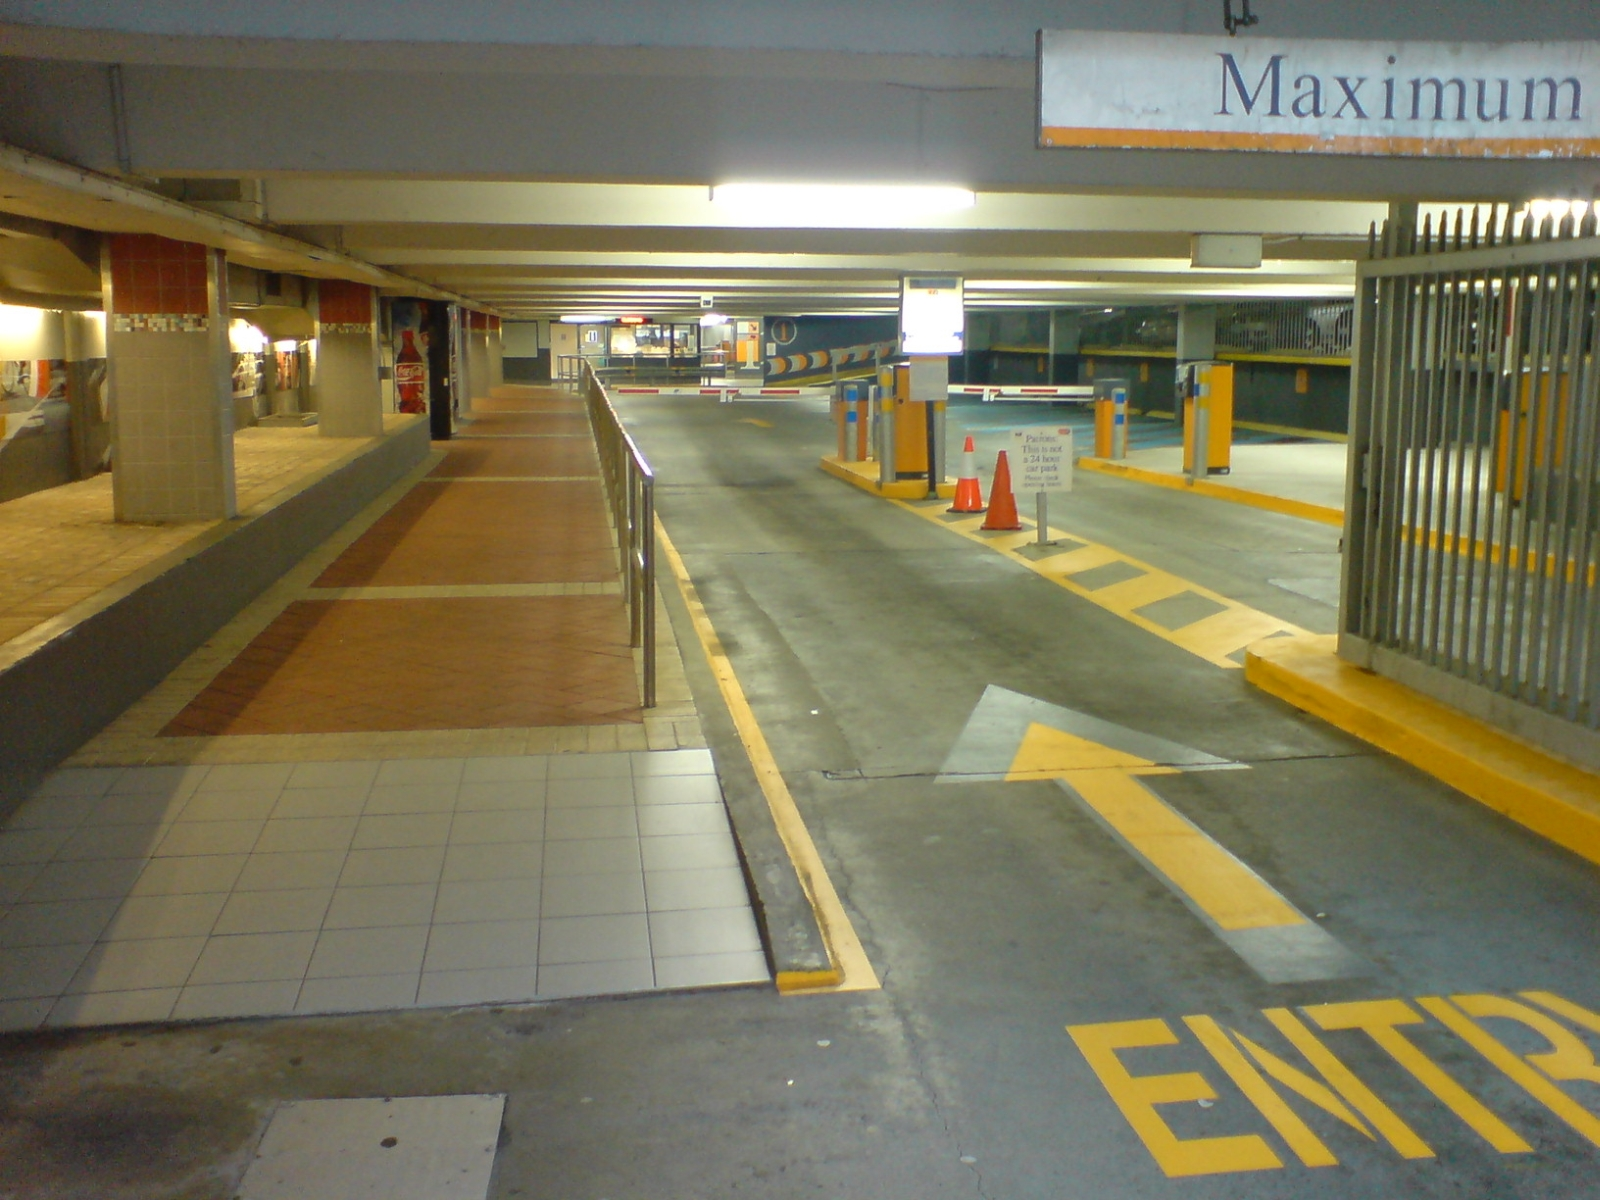 File:Car Park Building Entry, Perth.jpg - Wikimedia Commons